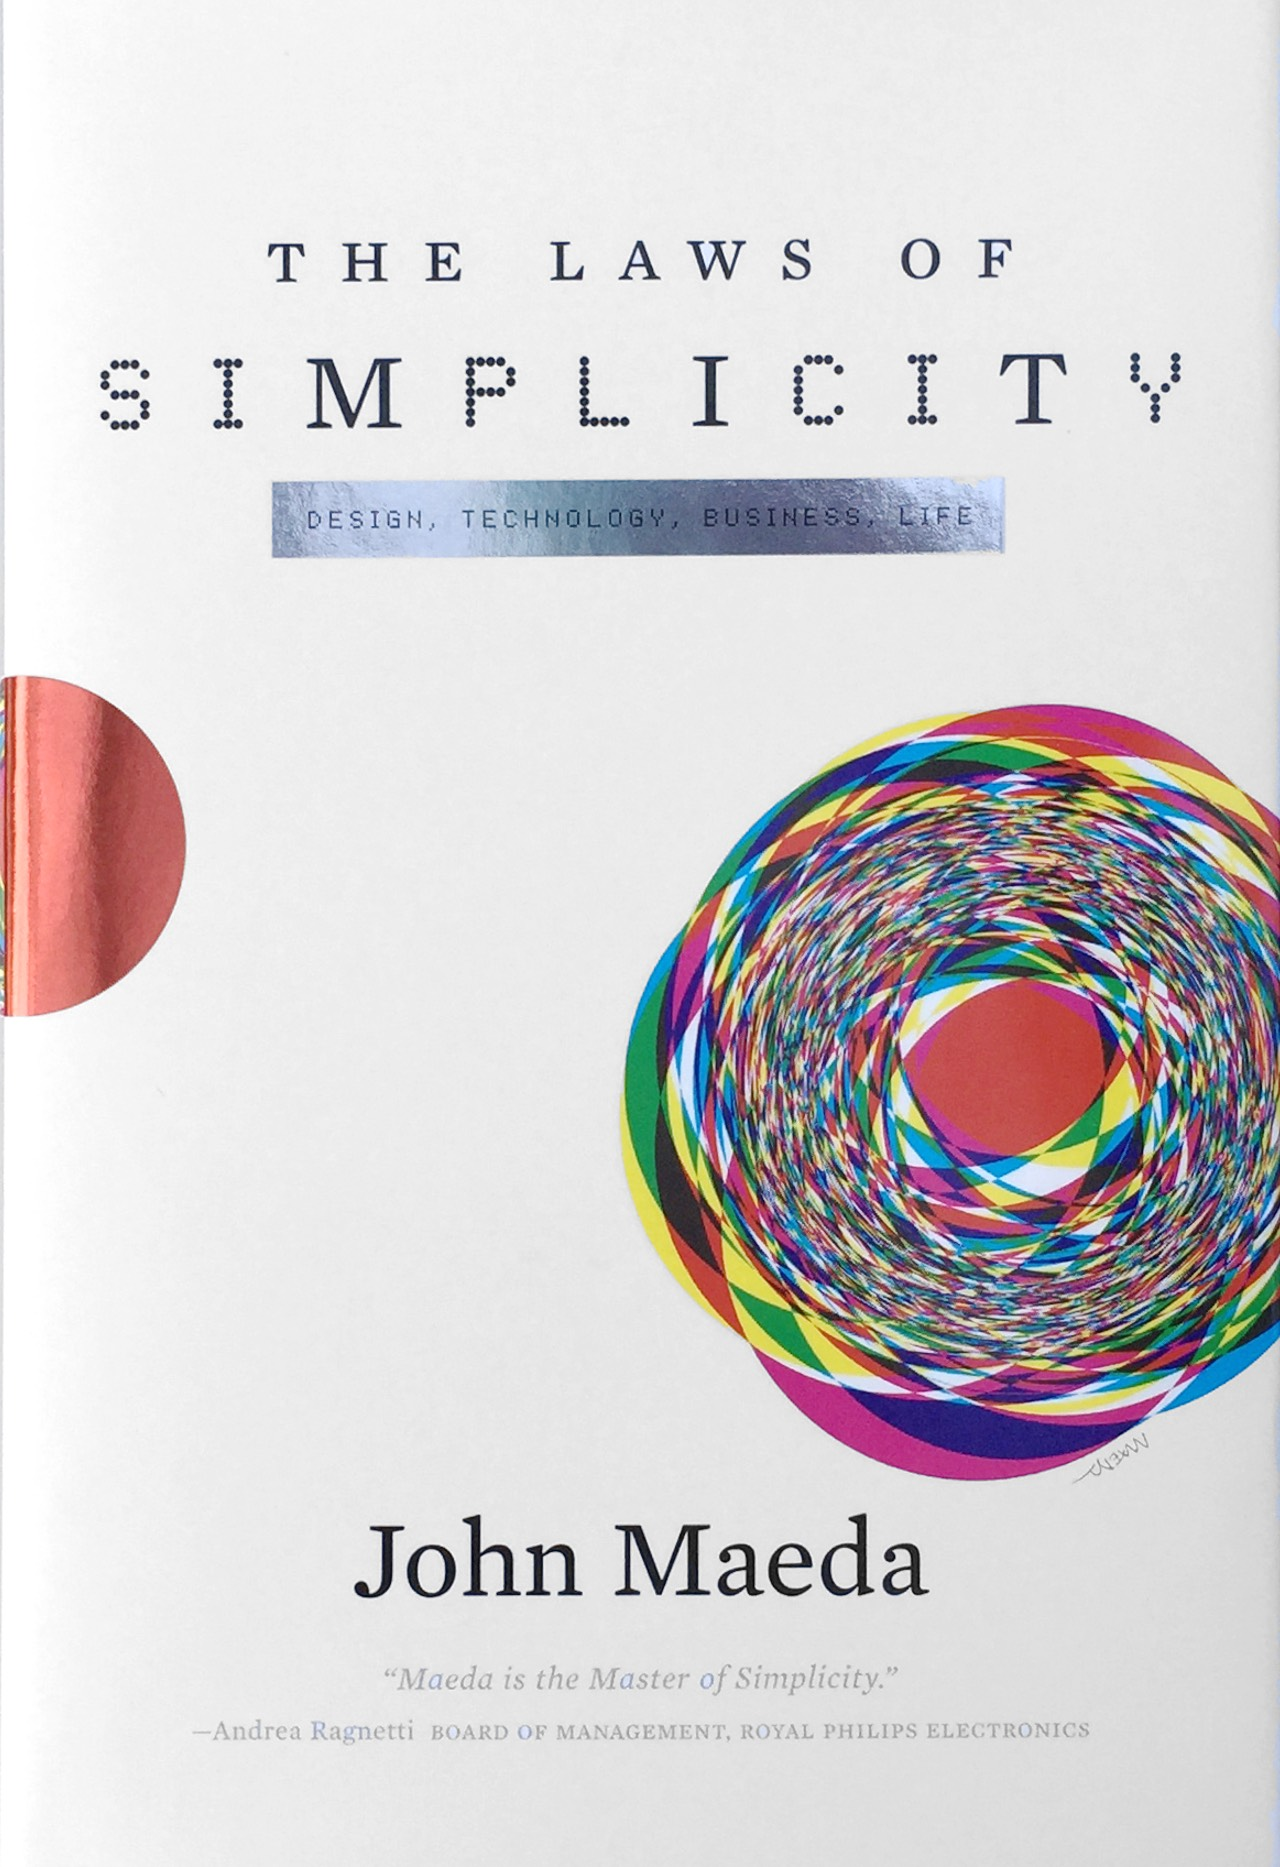 Book cover image for Laws of Simplicity available as an audio book.